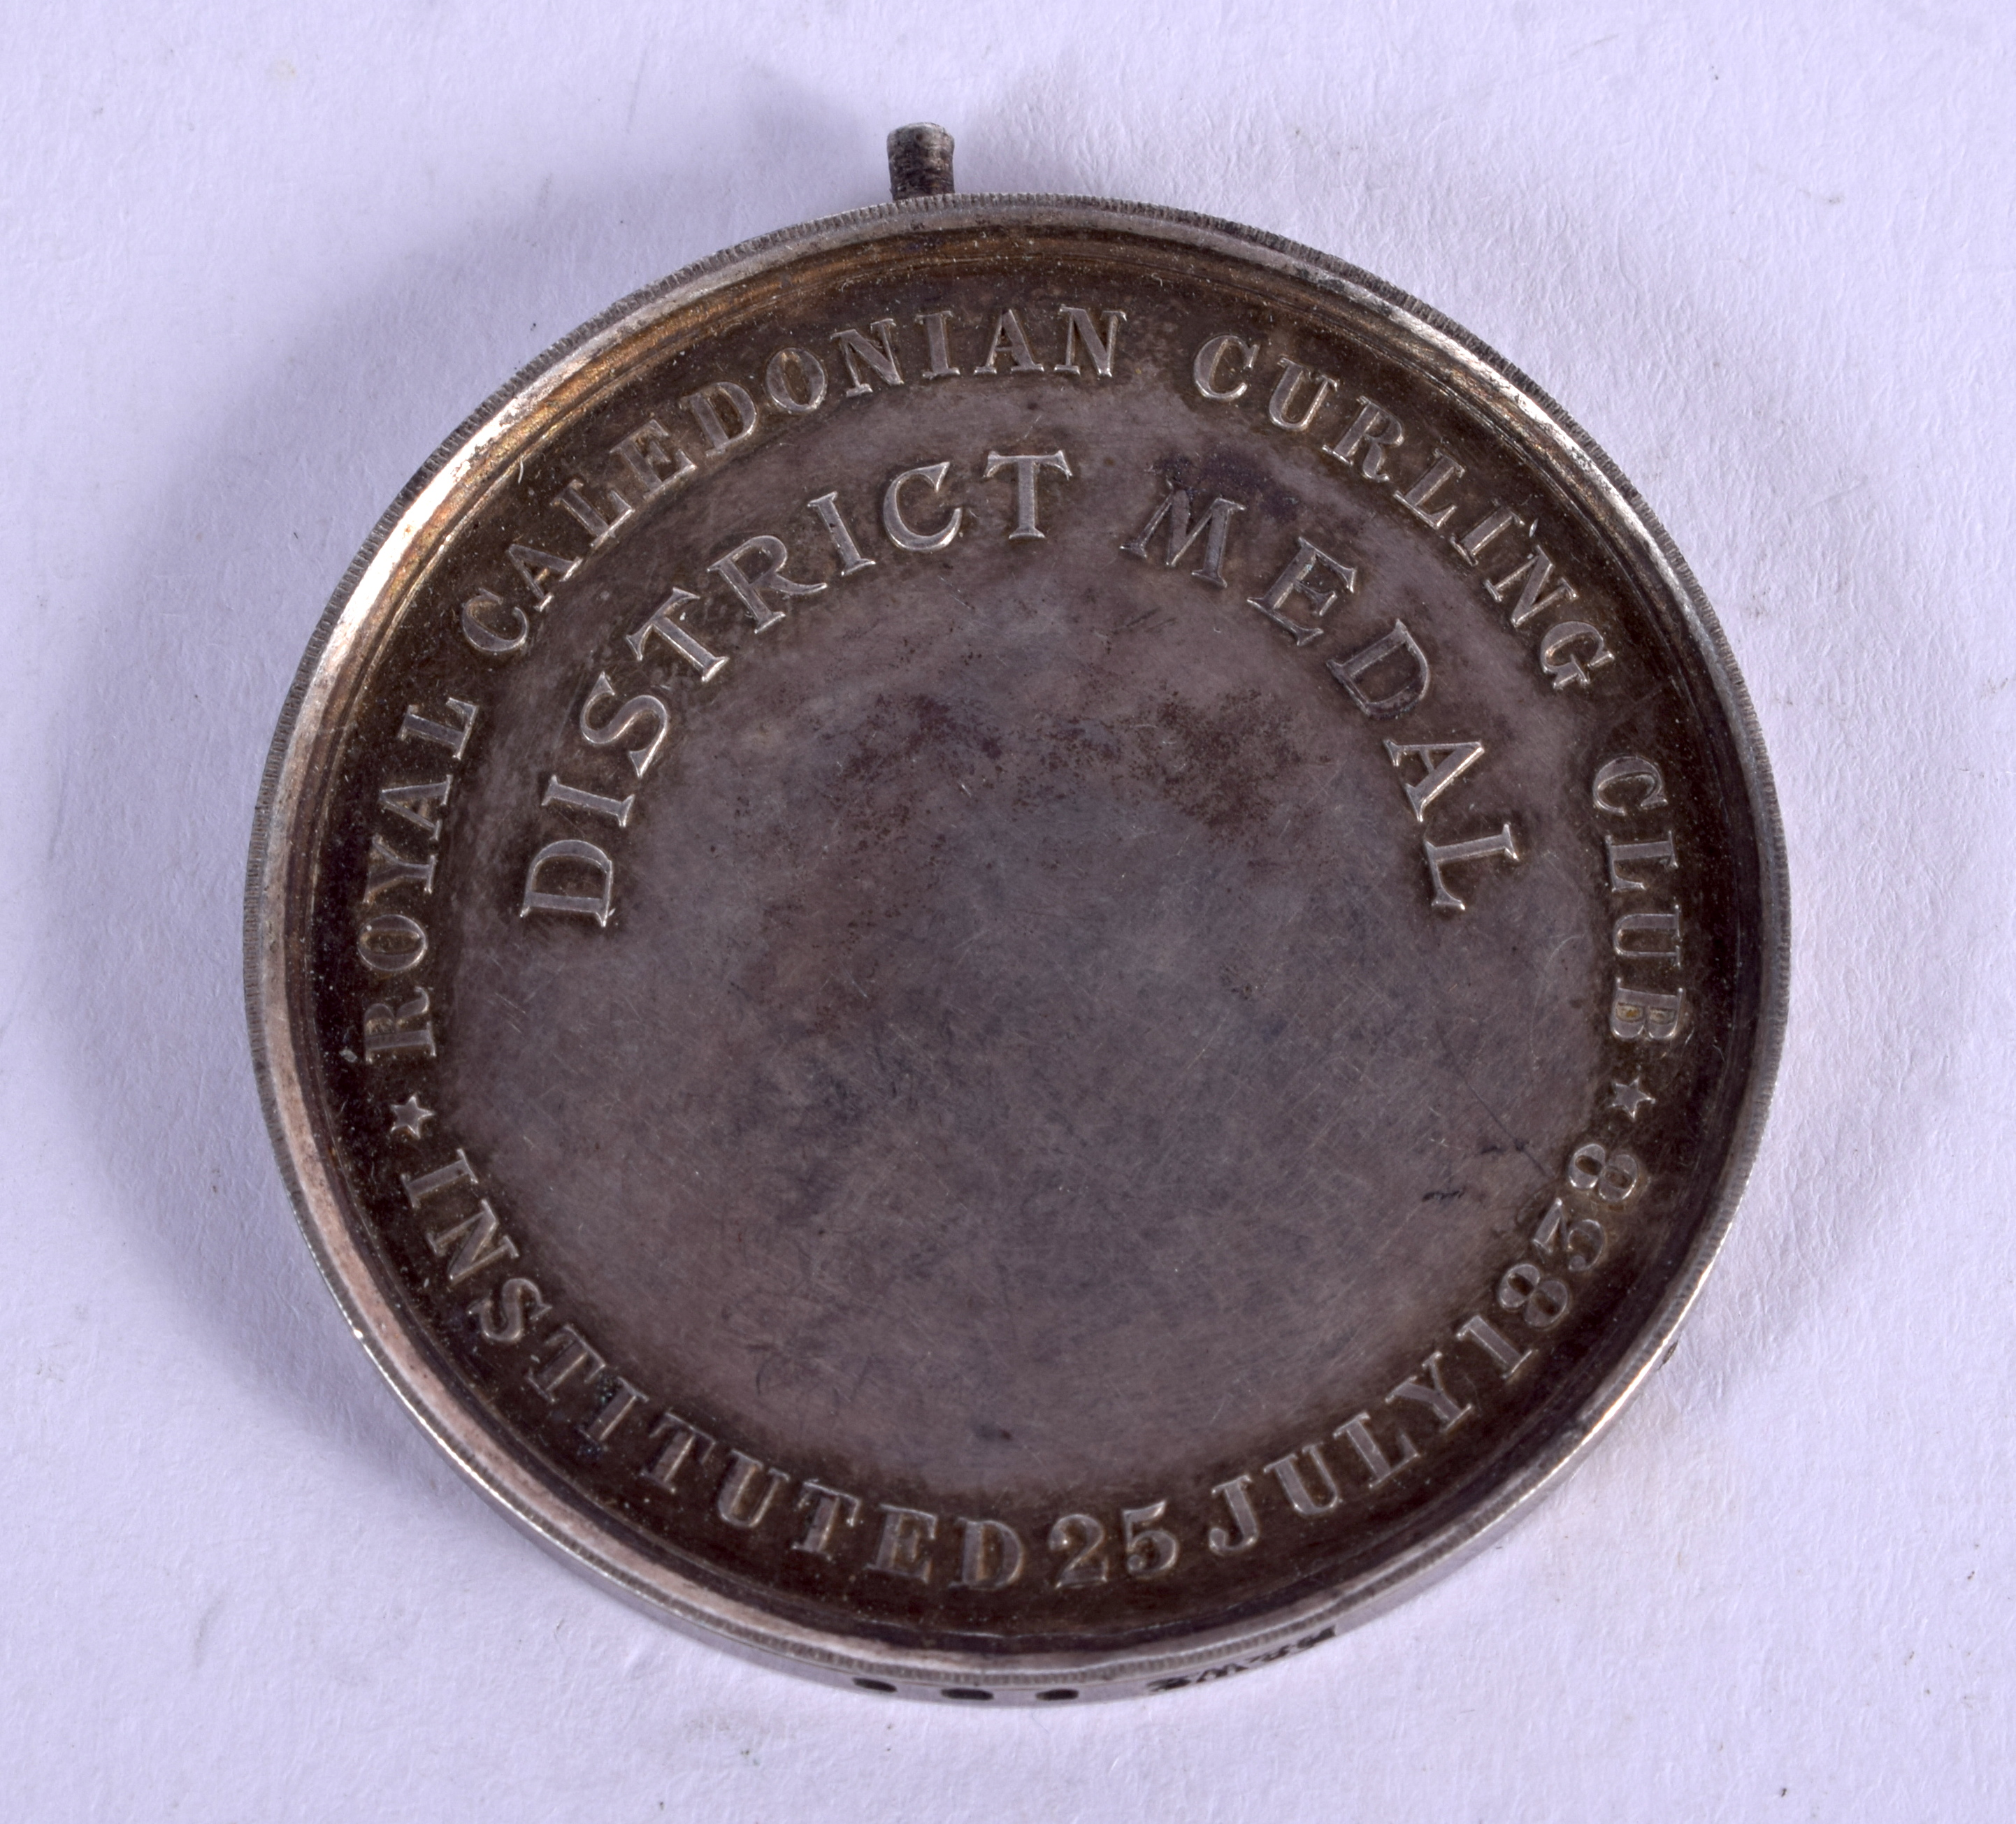 AN ANTIQUE ROYAL CALEDONIAN CURLING MEDAL. 26 grams. 4.5 cm wide. - Image 2 of 2